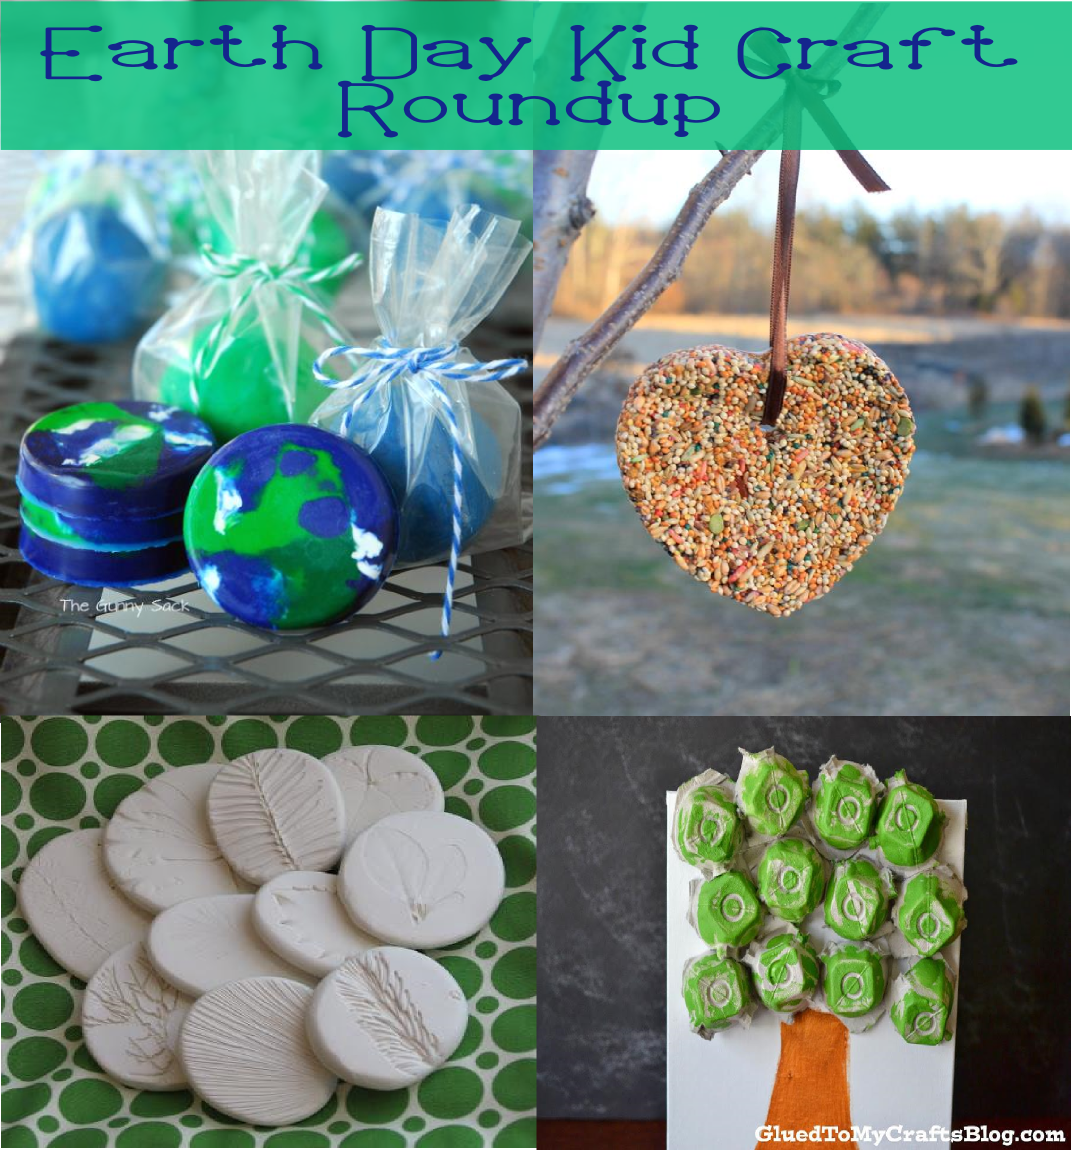 Earth Day Kid Craft Roundup